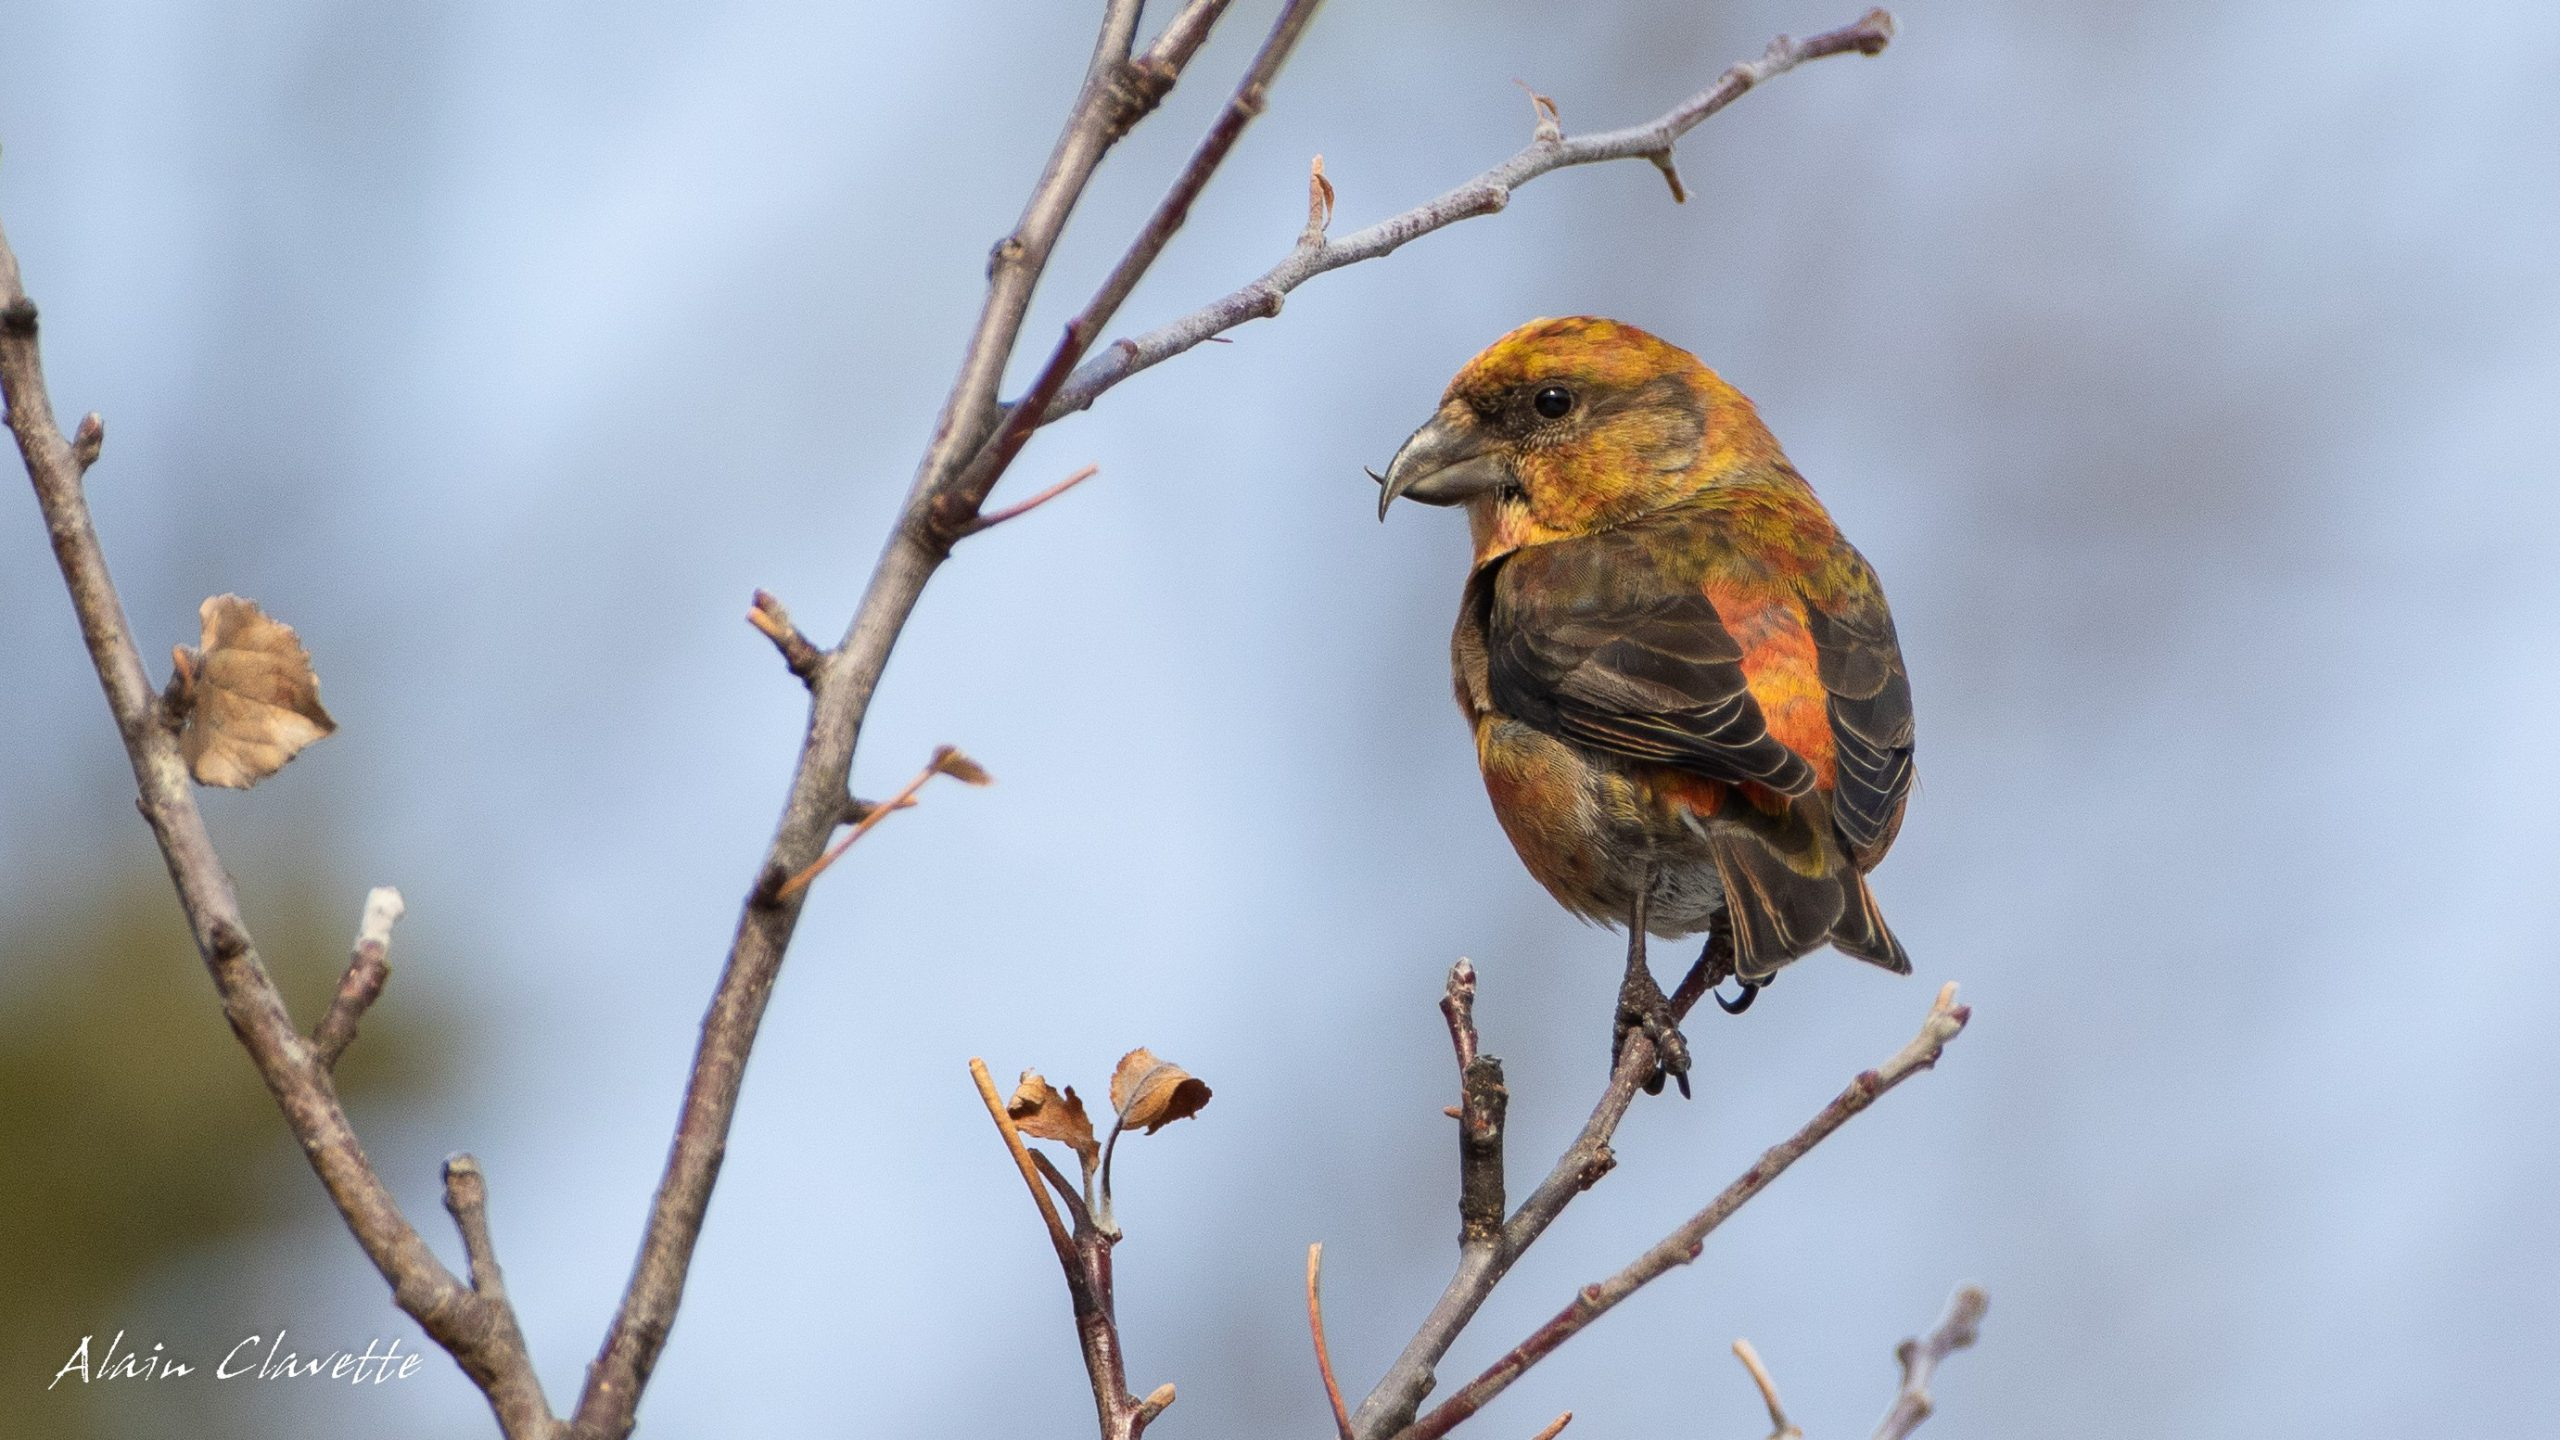 A male Red Crossbill showing its namesake crossed bill